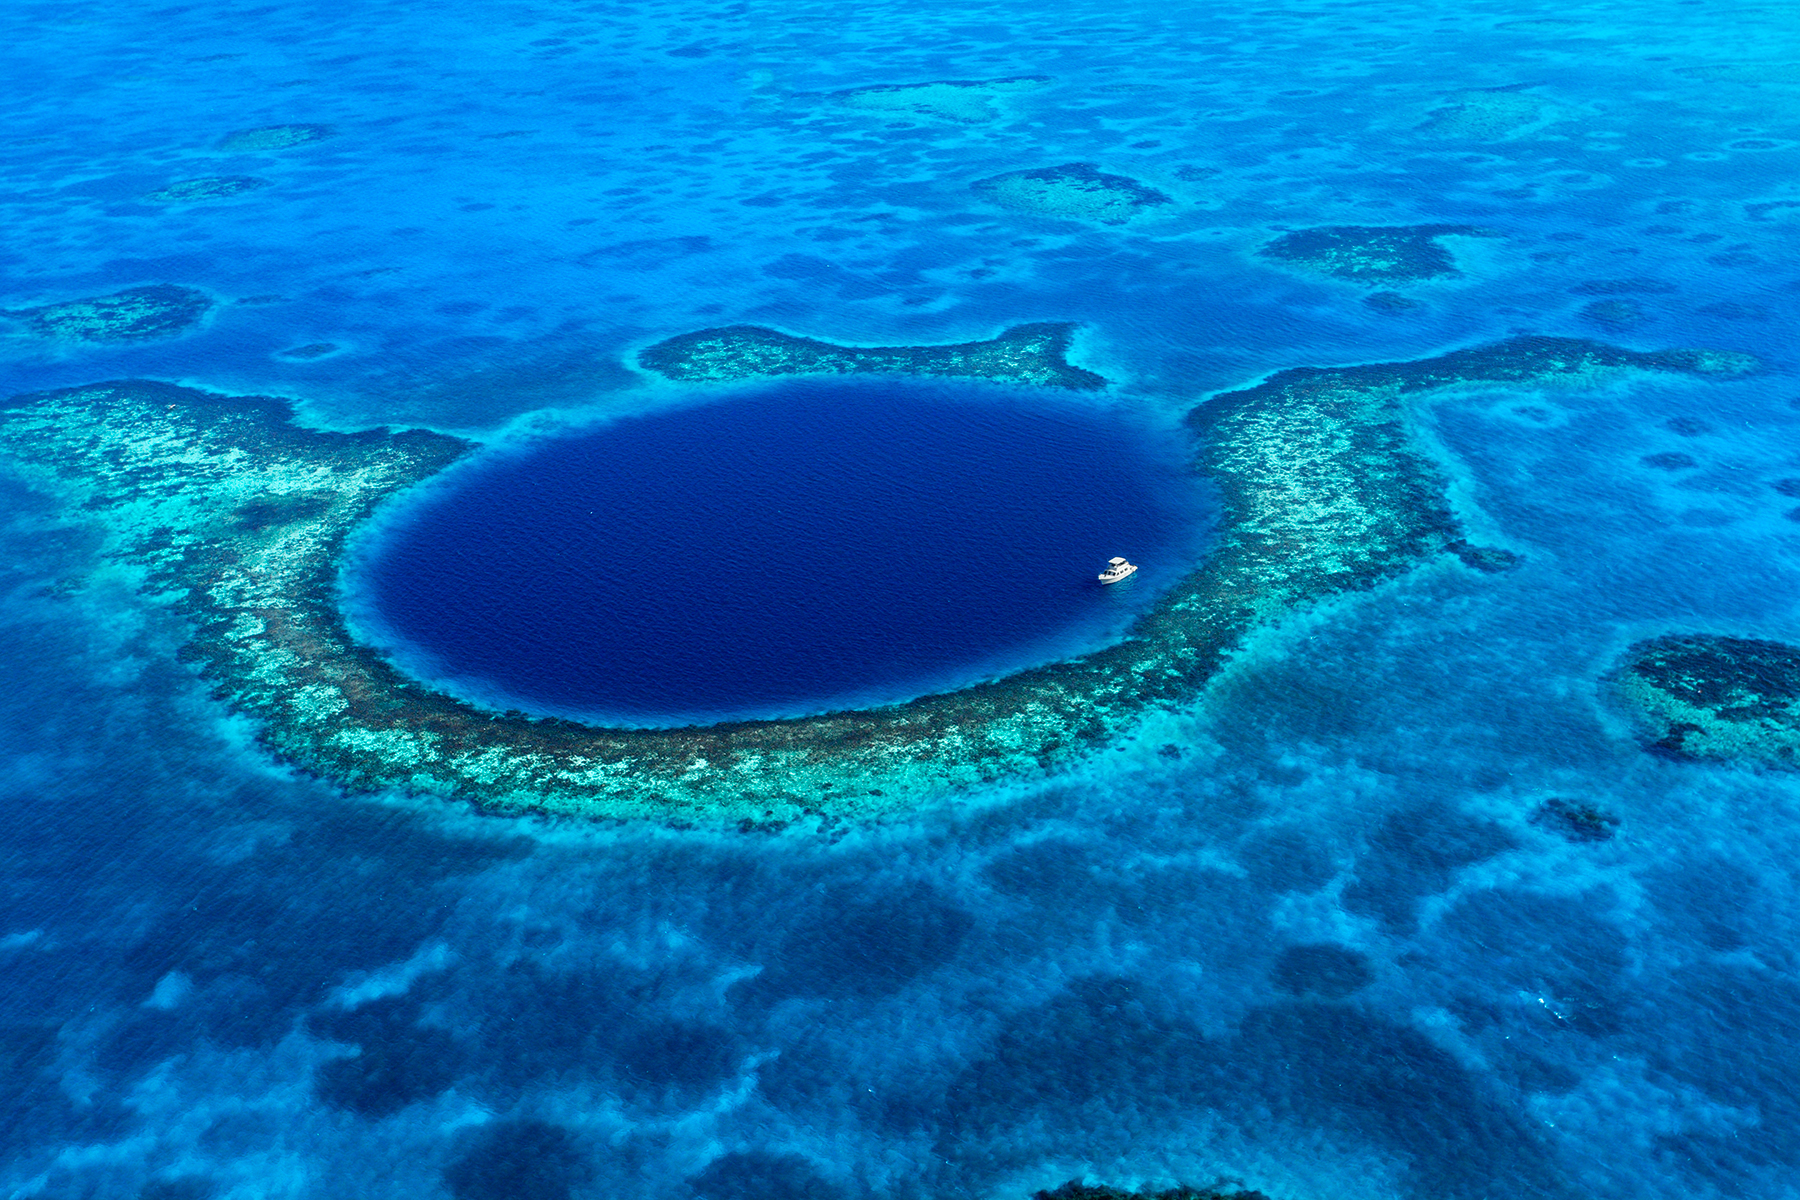 An aerial view of a boat moored in the Great Blue Hole off the coast of Belize